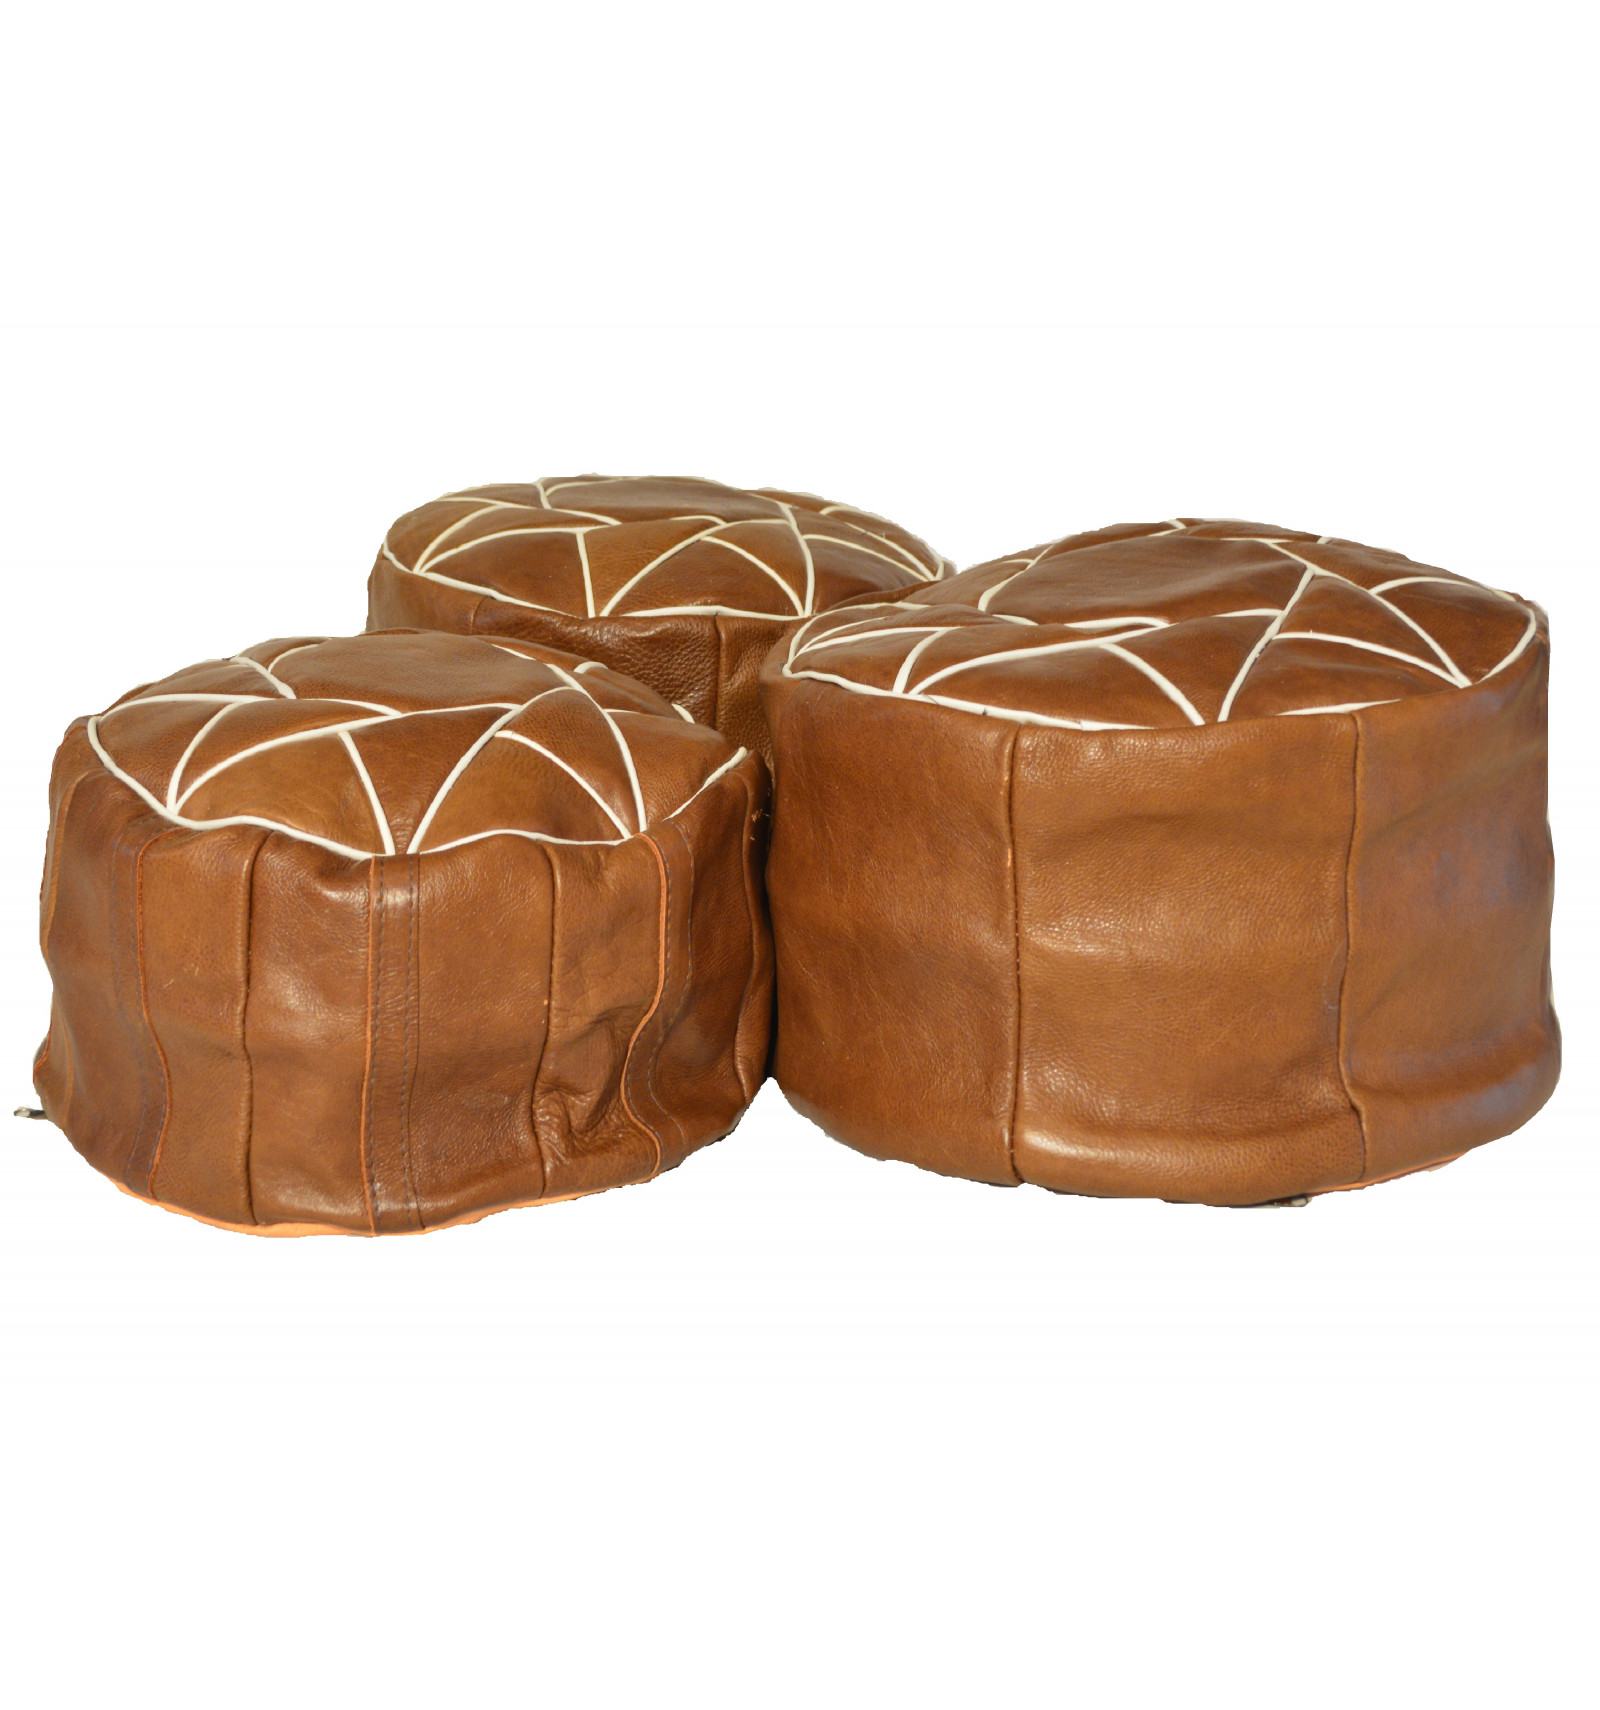 lot 3 pouf design pouf marocain en cuir marron lartisanet. Black Bedroom Furniture Sets. Home Design Ideas